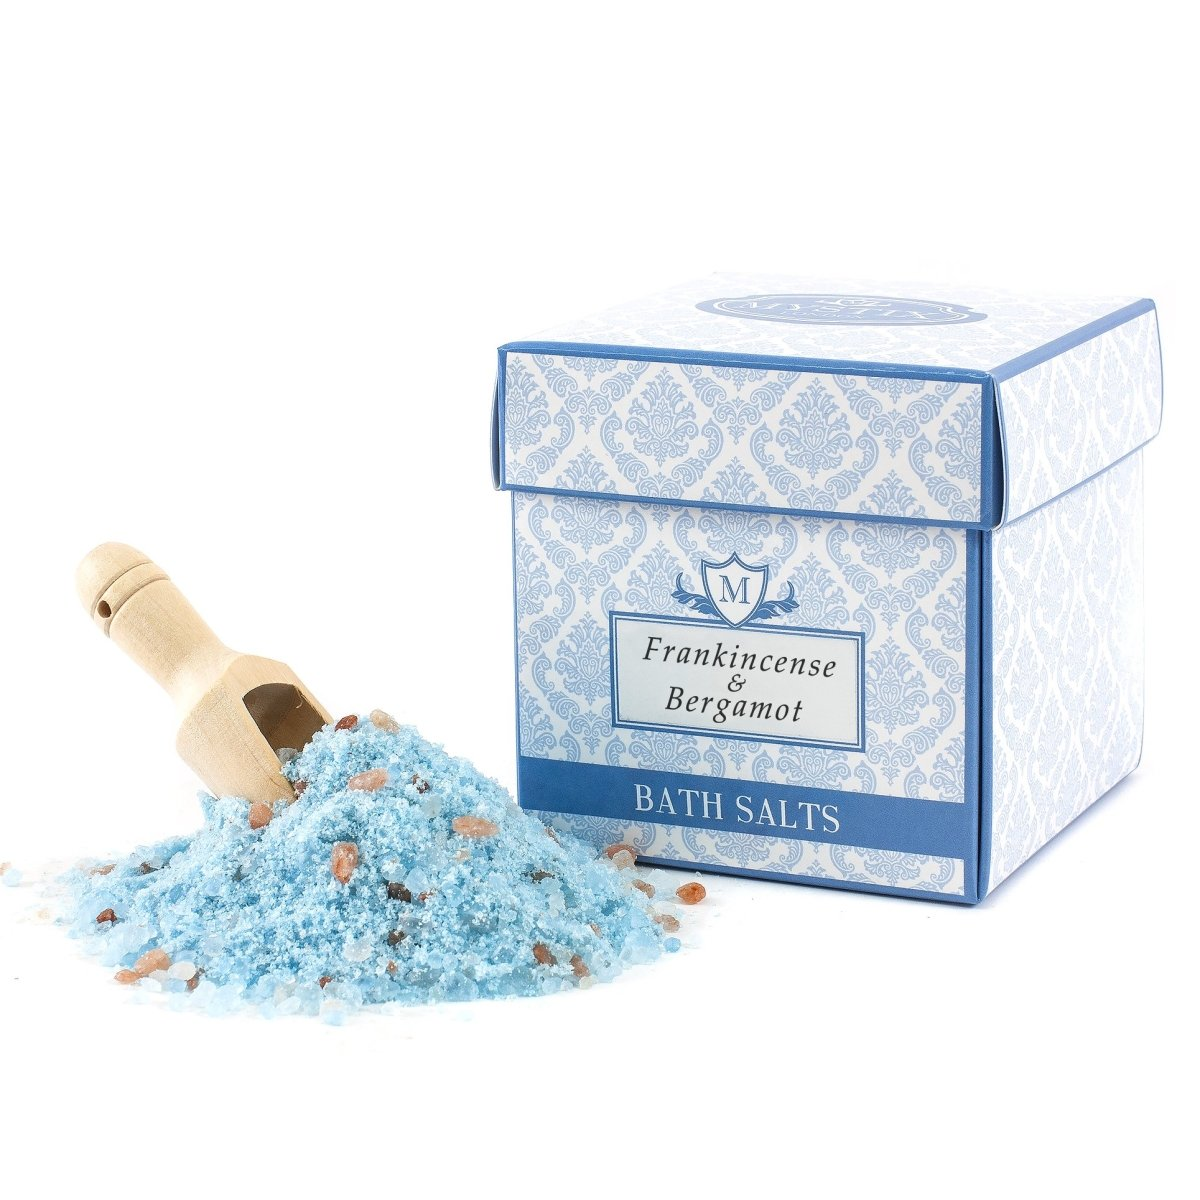 Frankincense & Bergamot Scented Bath Salt 350g - Mystic Moments UK